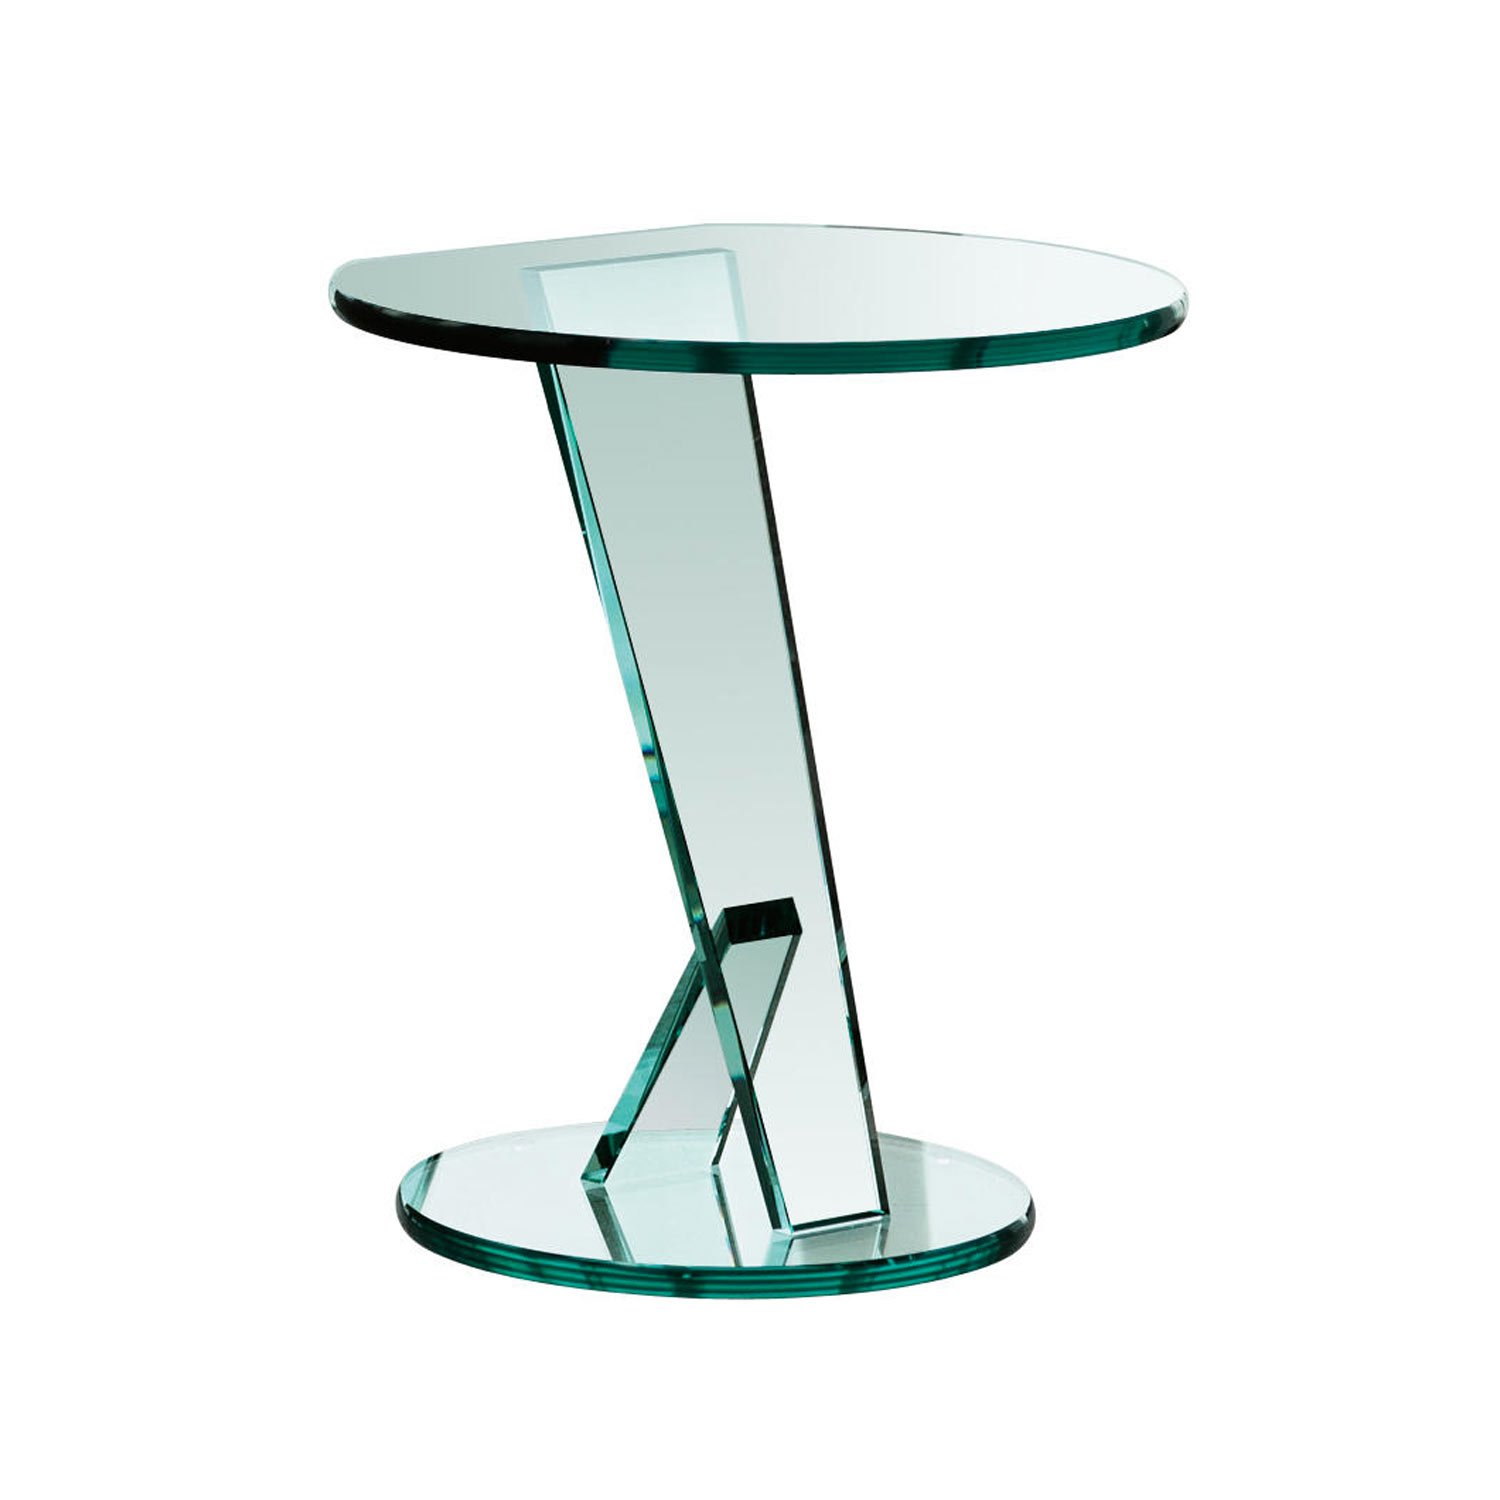 Nicchio Small Glass Table Klarity Glass Furniture